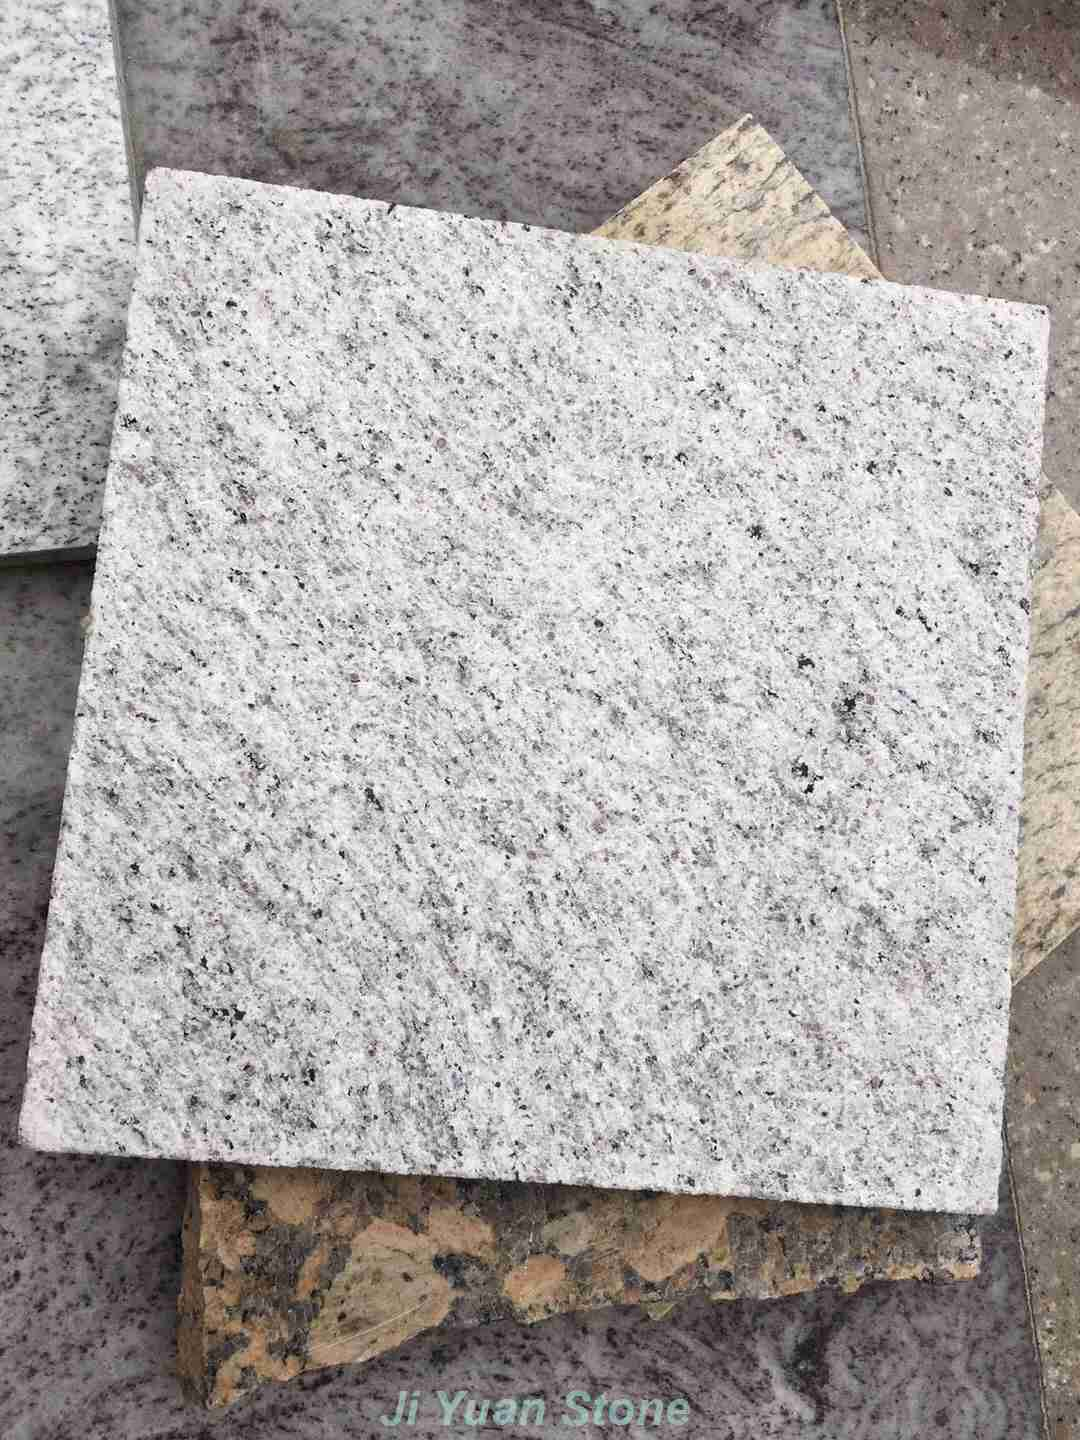 Kashmir white granite worktops,kashmir white granite tiles,kashmir white granite kitchen,kashmir gold granite price,kashmir granite worktops,white grey granite countertops